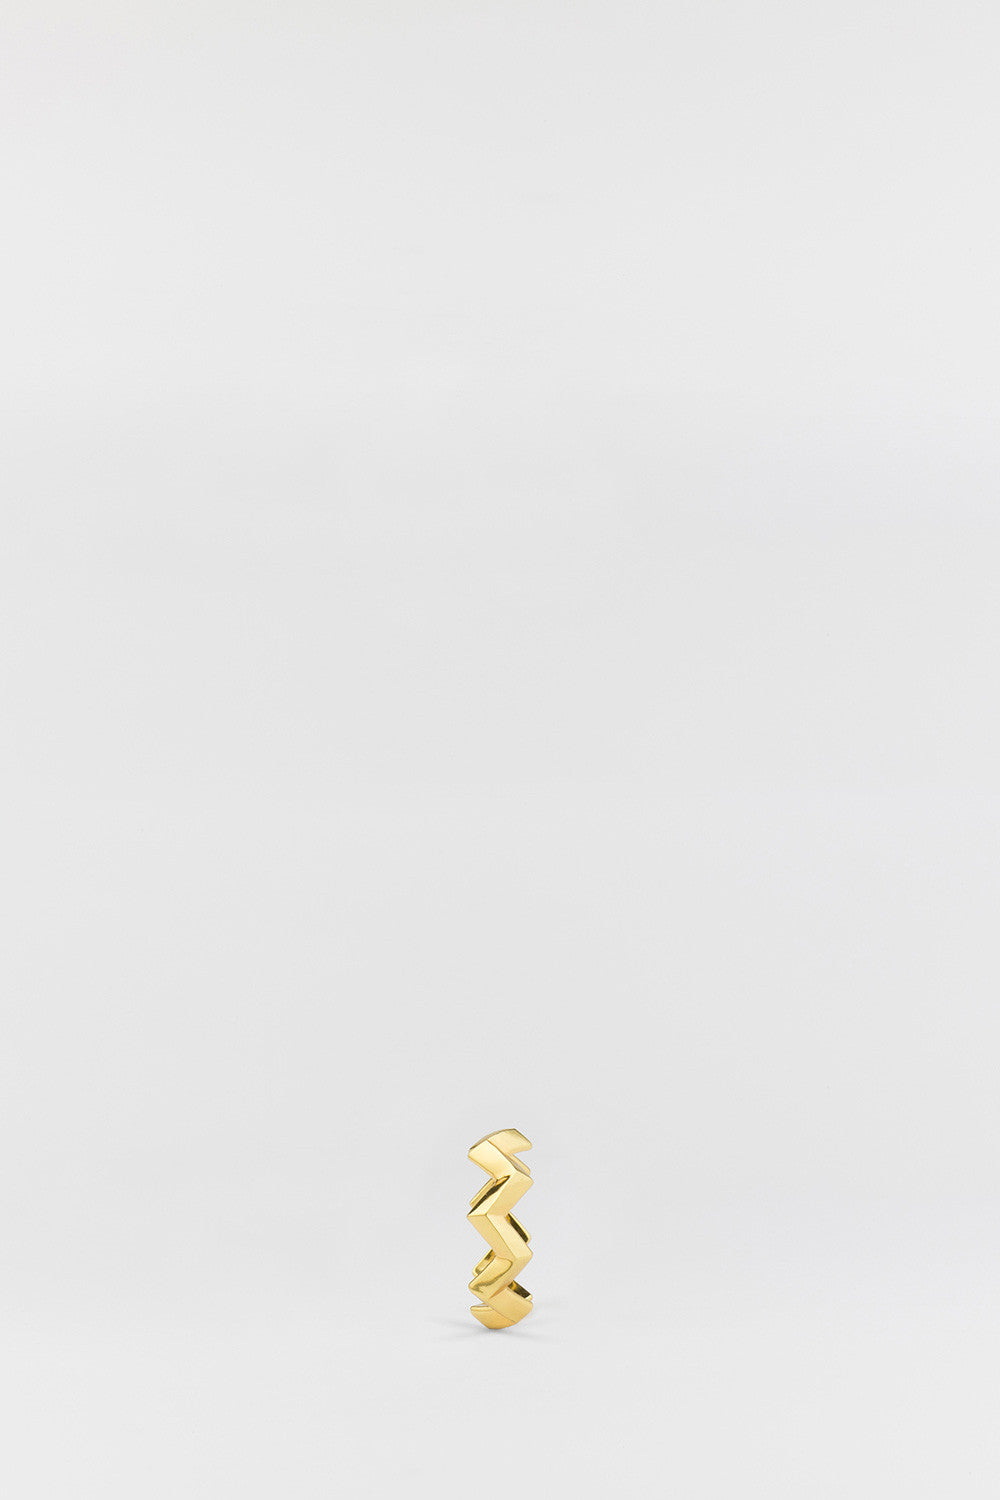 Circuit (Zig-Zag) Ring Gold